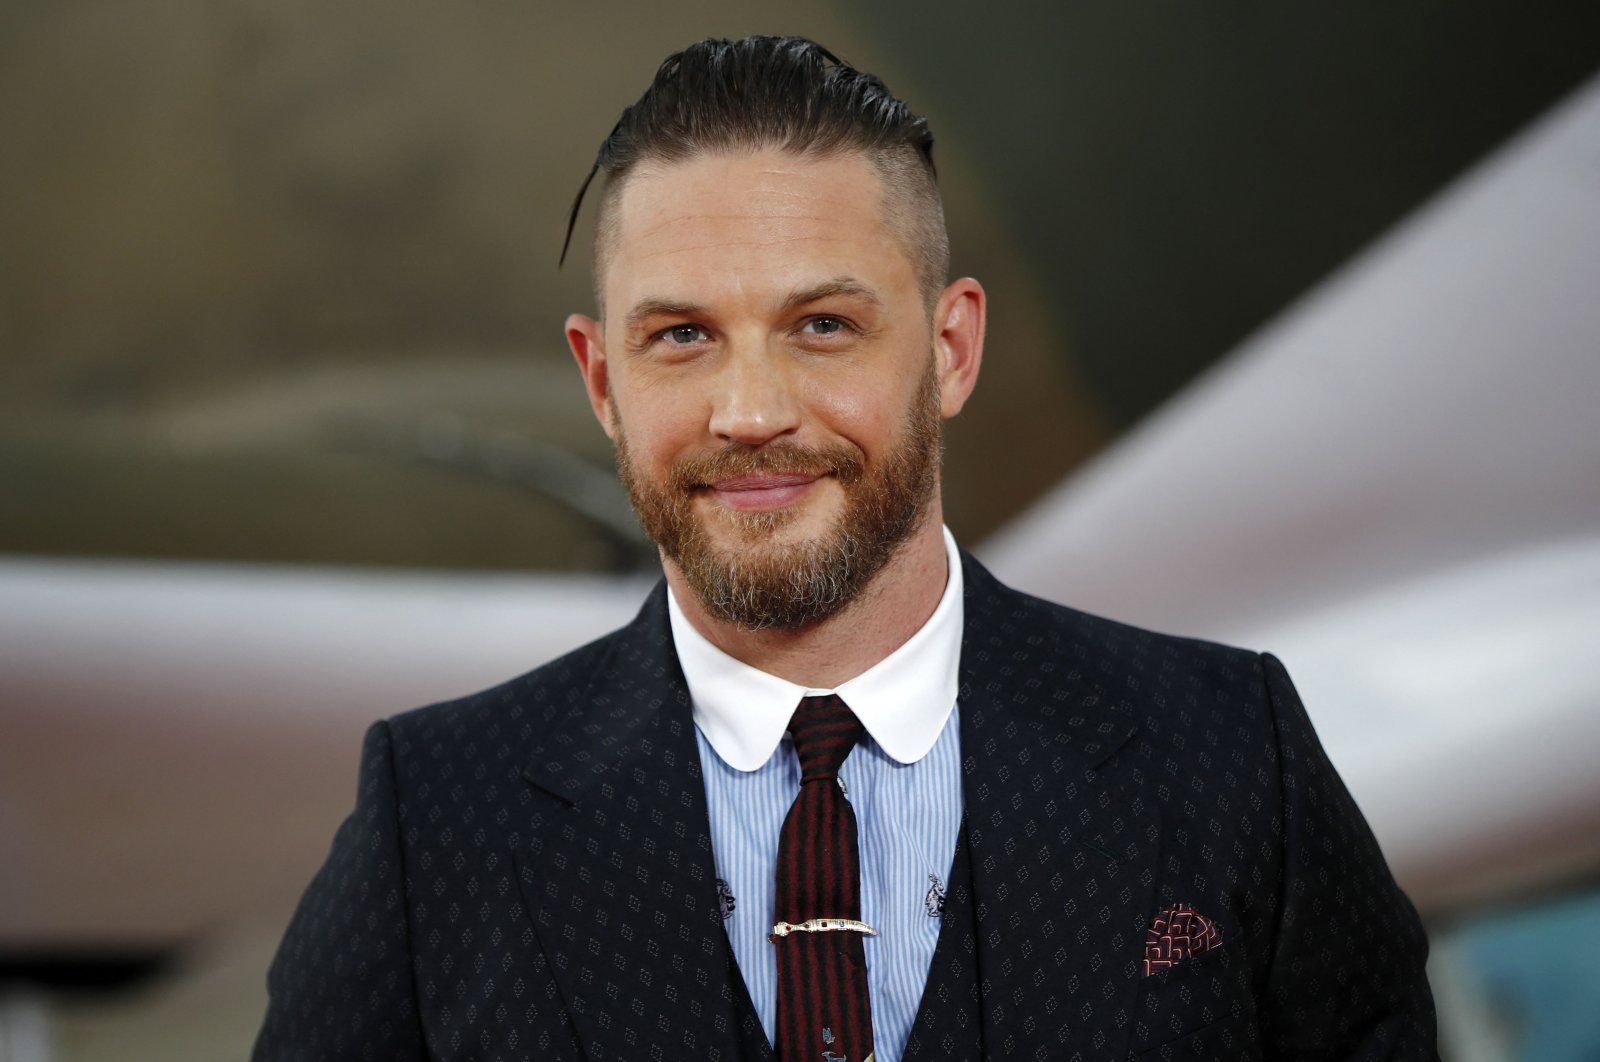 """British actor Tom Hardy poses for a photograph upon arrival for the world premiere of """"Dunkirk"""" in London, U.K., July 13, 2017. (AFP Photo)"""